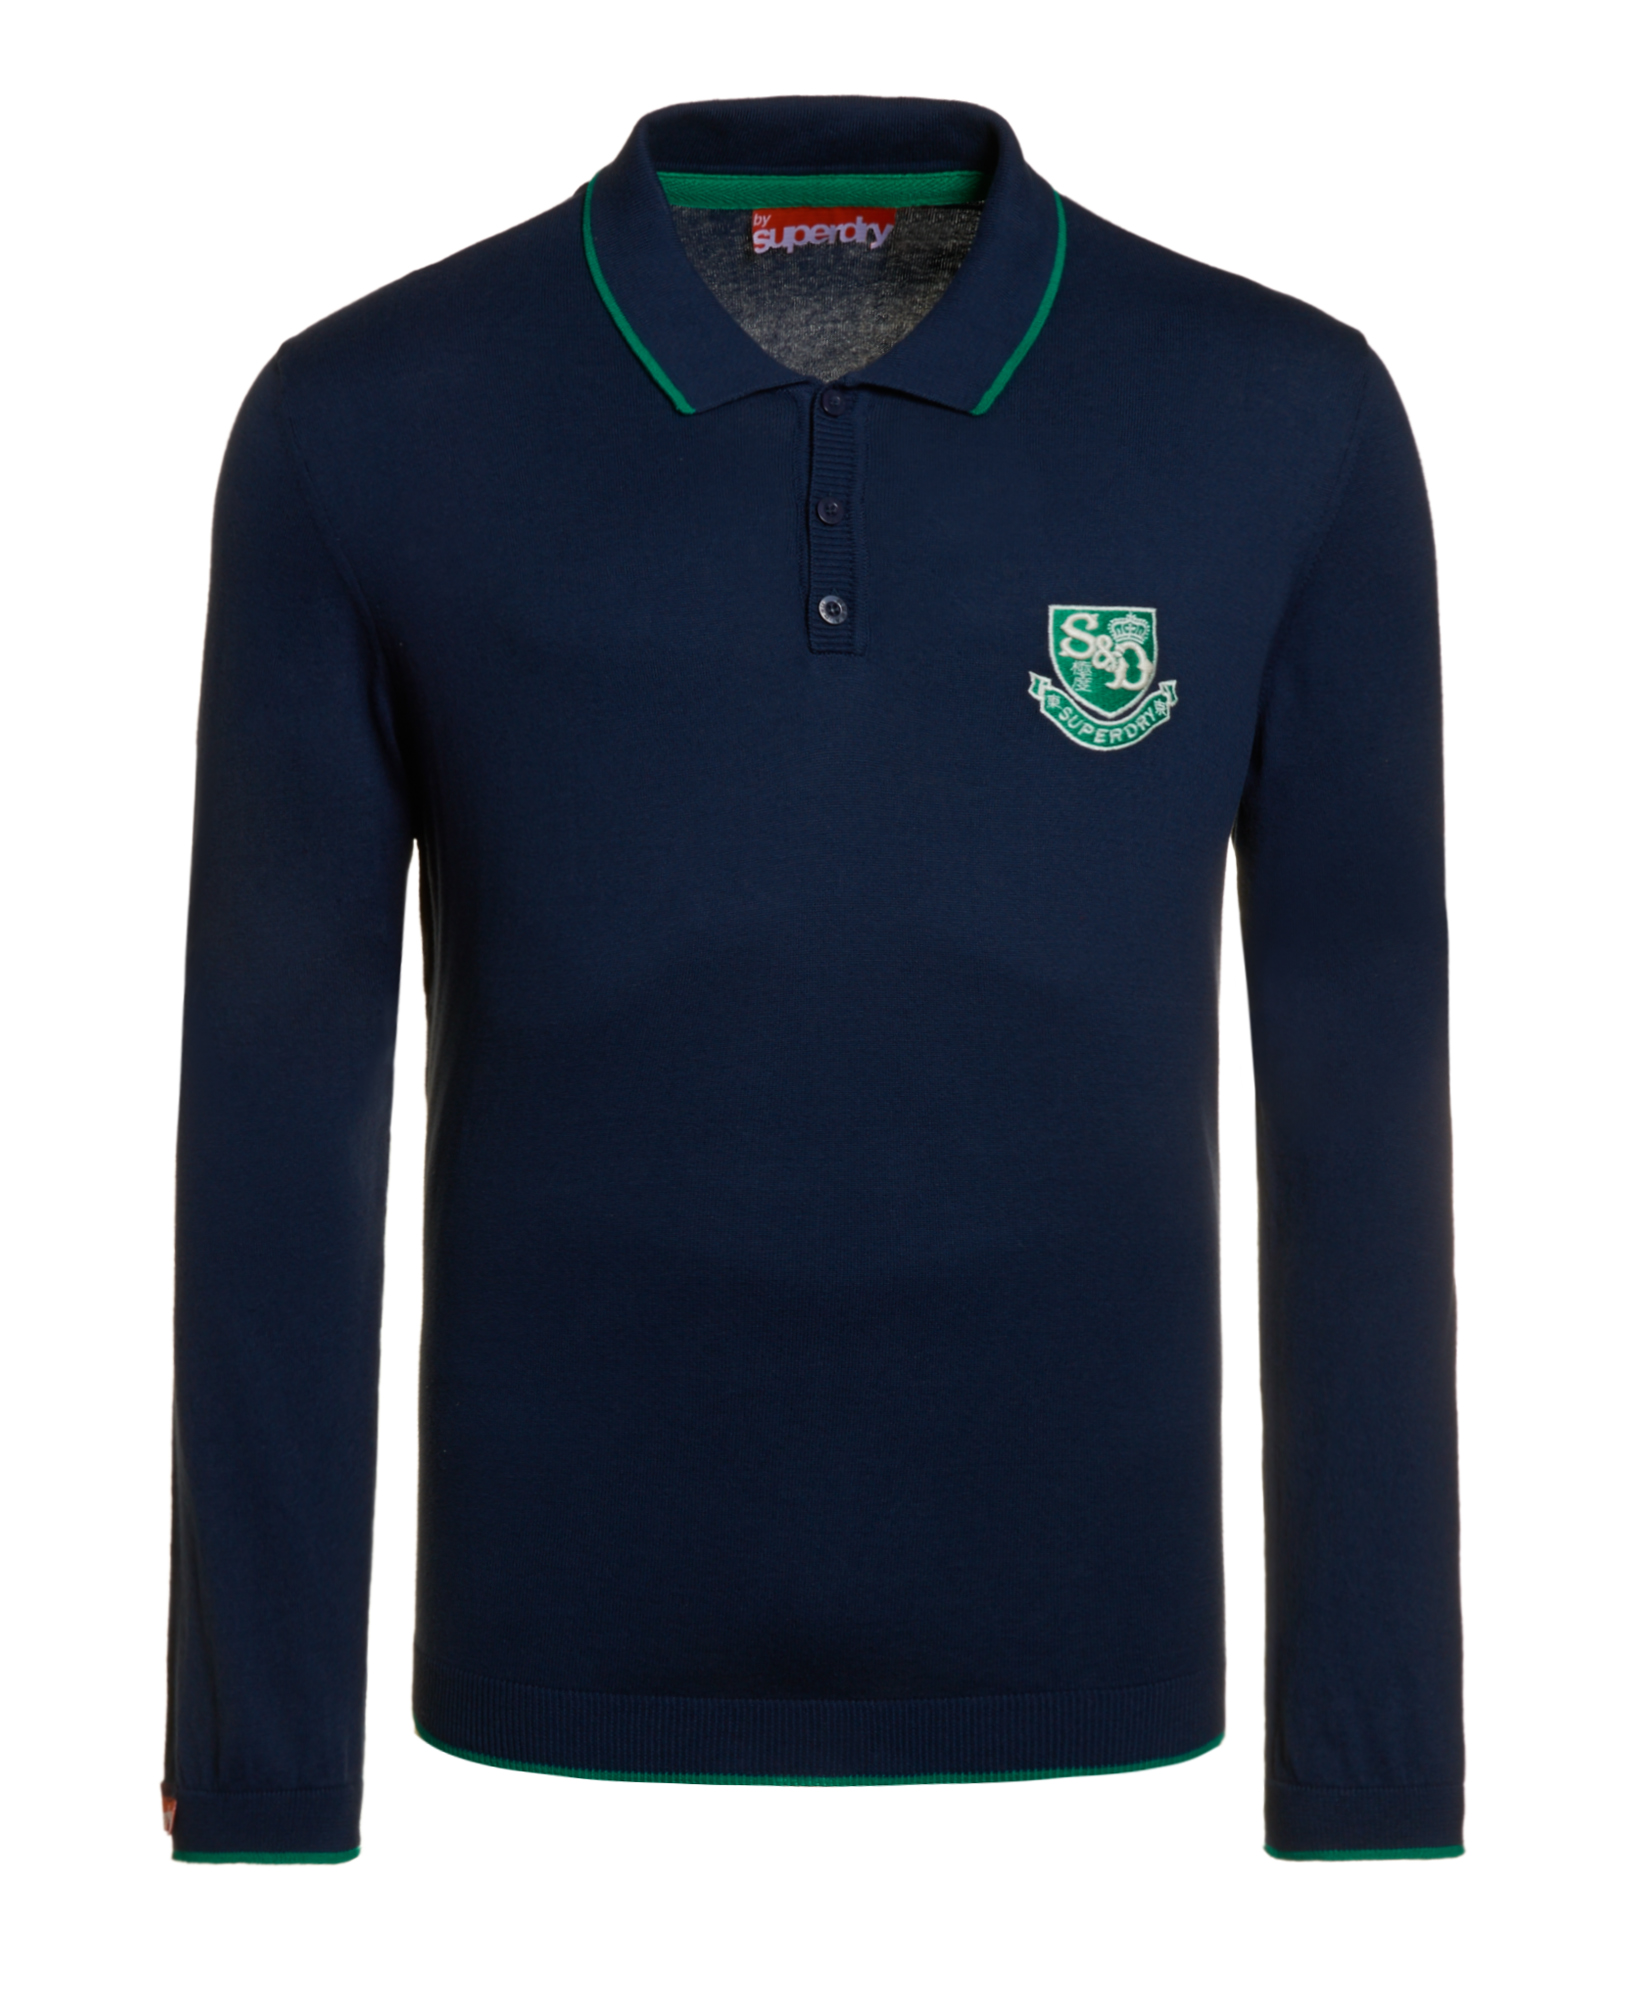 neues herren superdry knit polo shirt french navy blau ebay. Black Bedroom Furniture Sets. Home Design Ideas